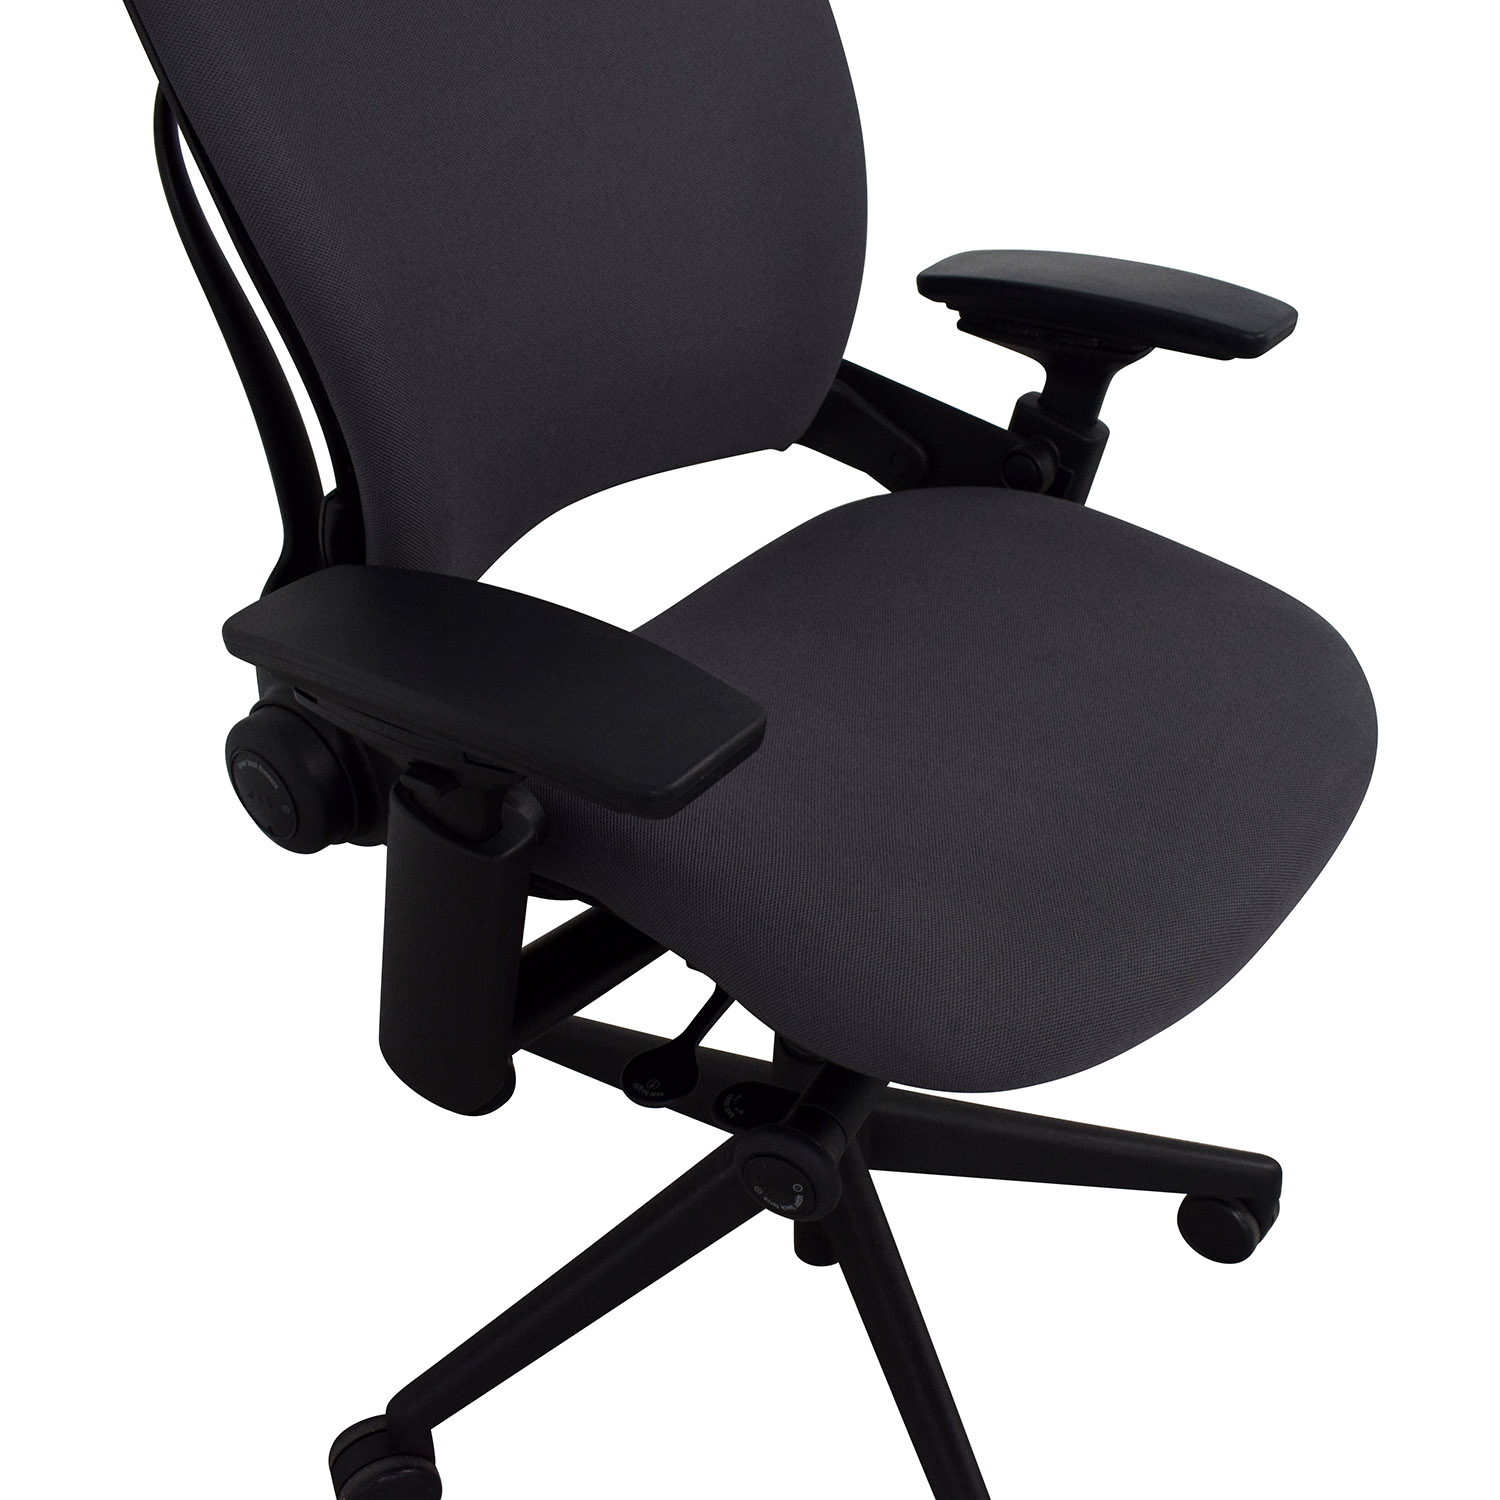 Steelcase Steelcase Leap V2 Office Chair discount